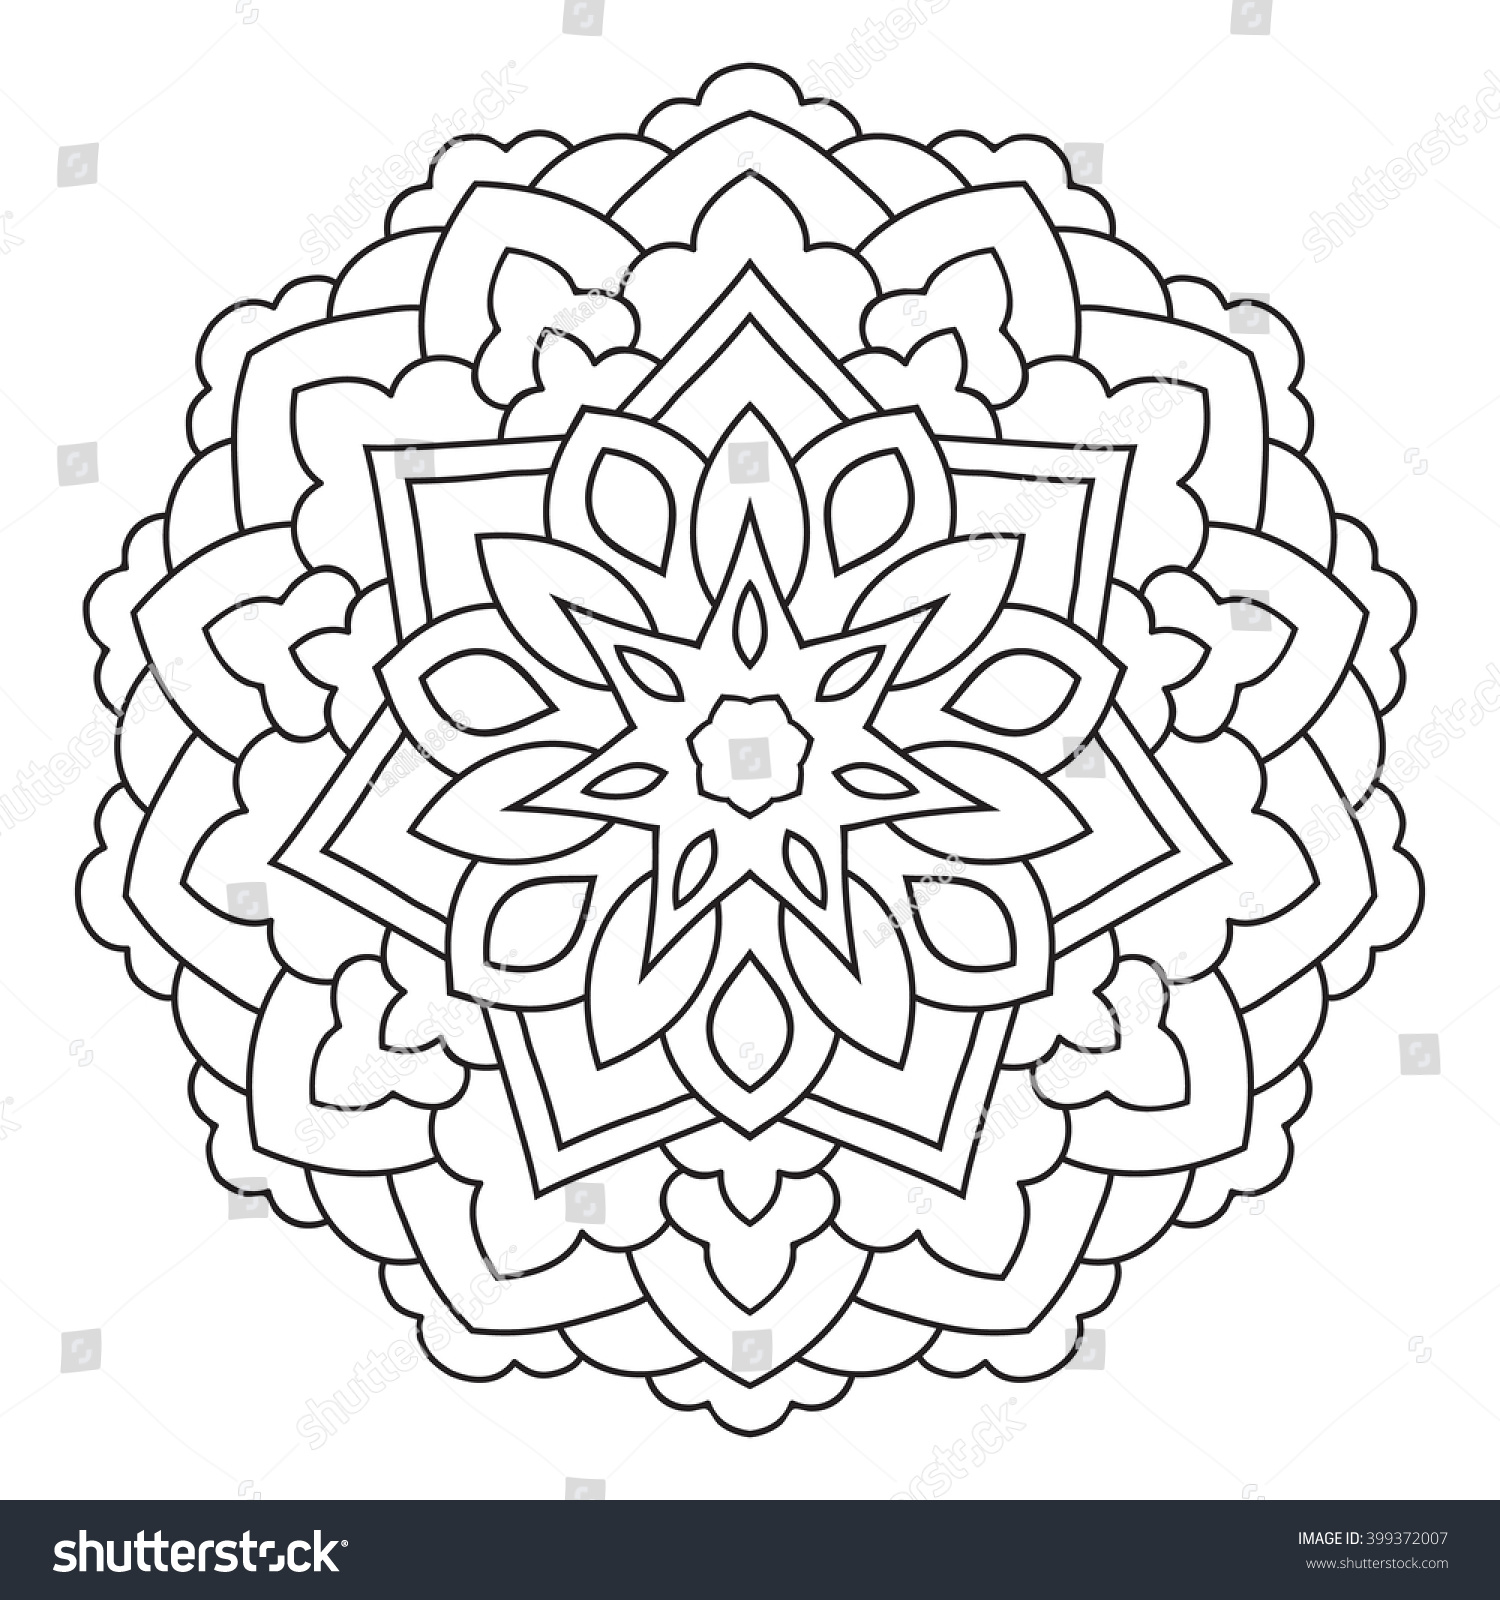 Colouring Symmetrical Patterns Symmetry patterns colouring pages